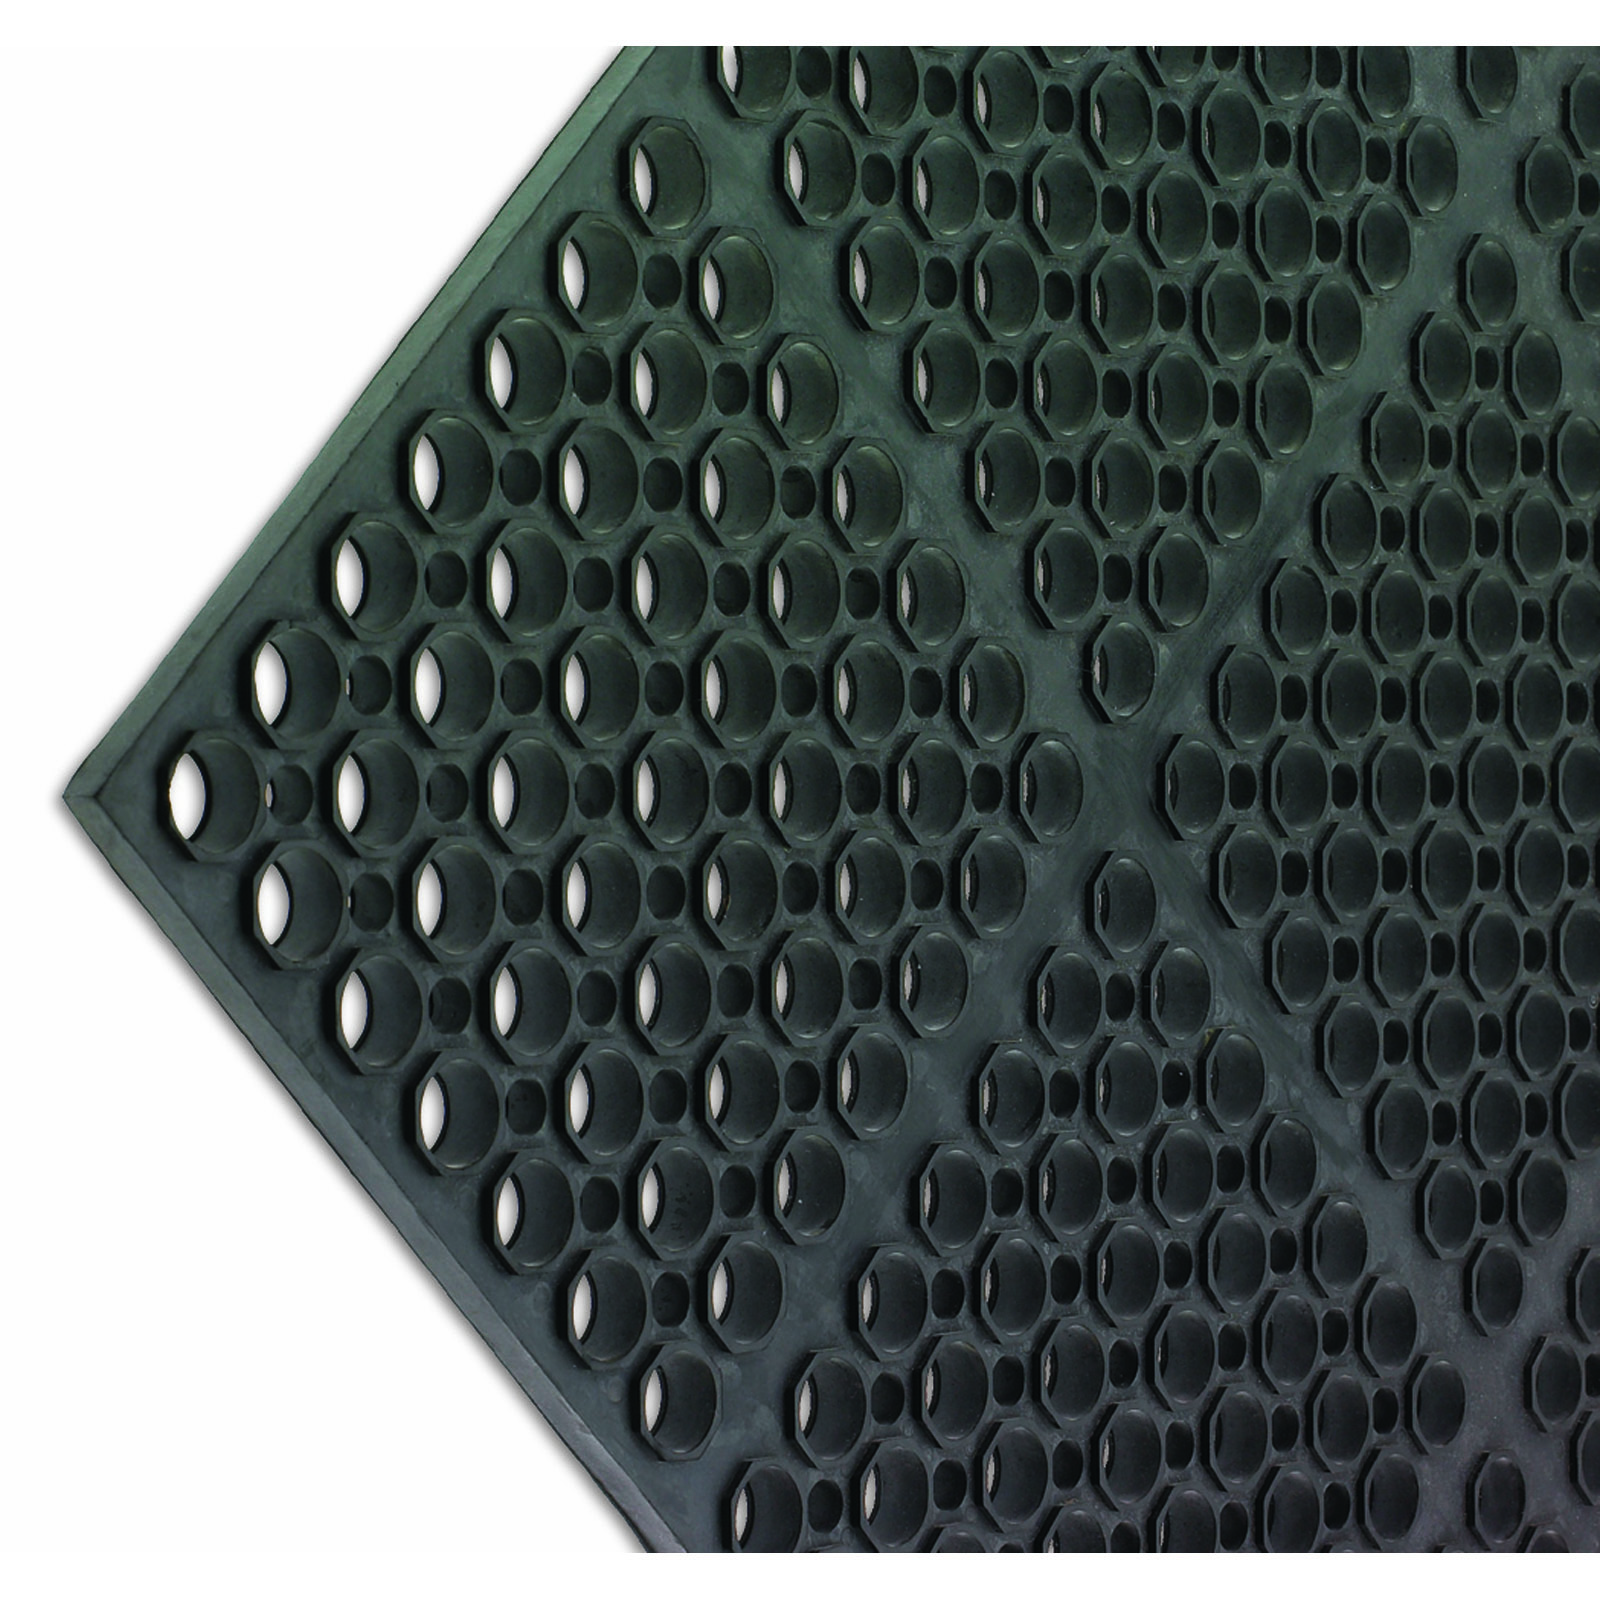 San Jamar KM2100B floor mat, anti-fatigue